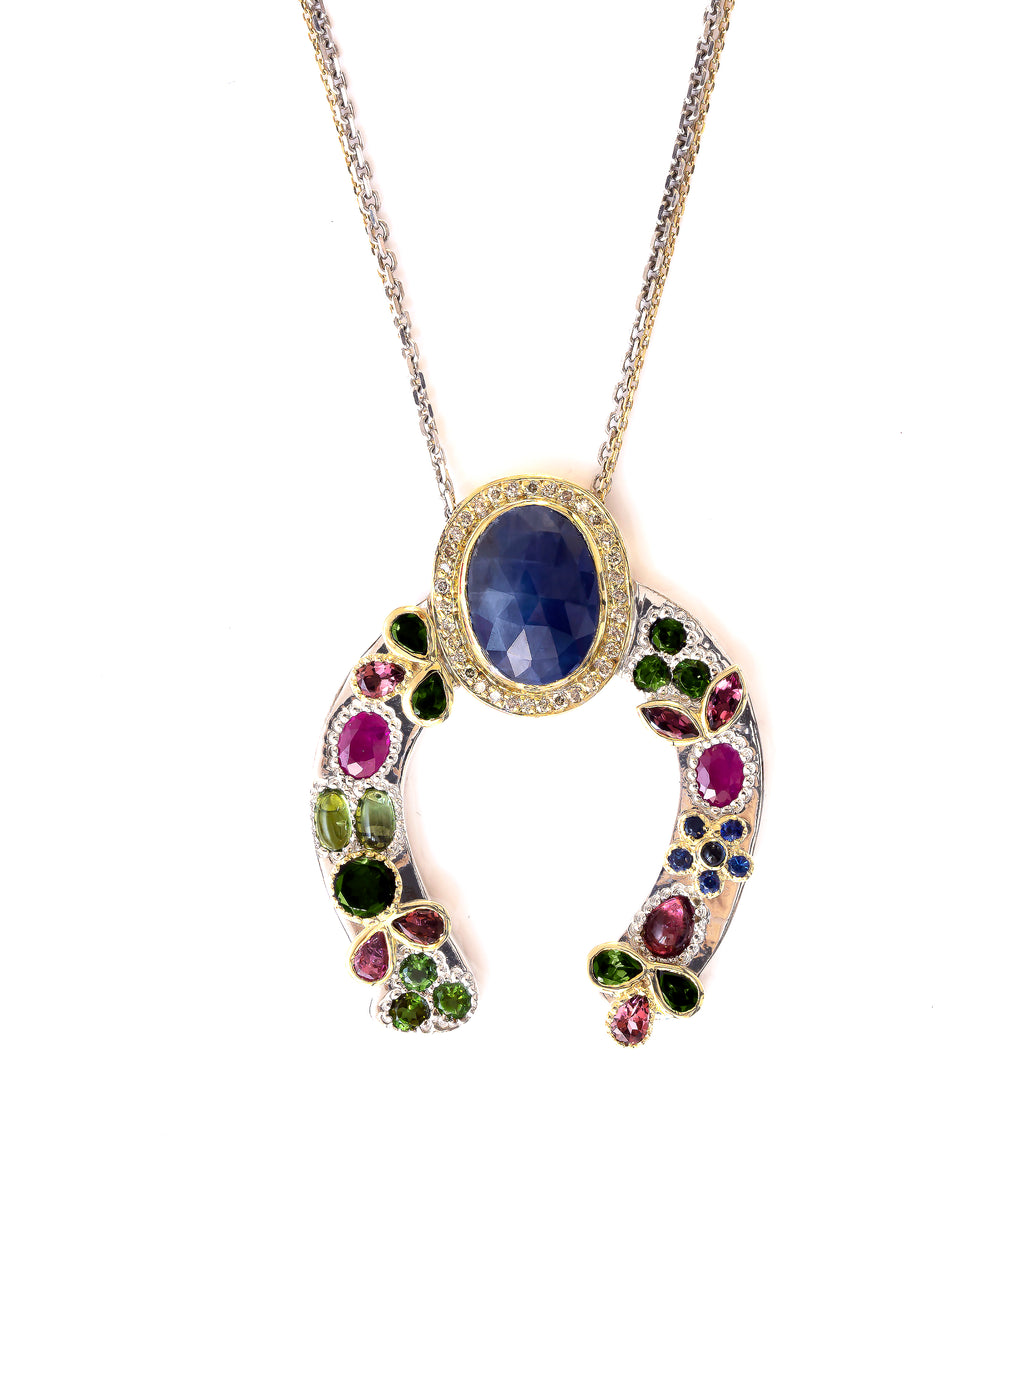 Horseshoe Necklace with Blue Sapphire and Diamond Crown